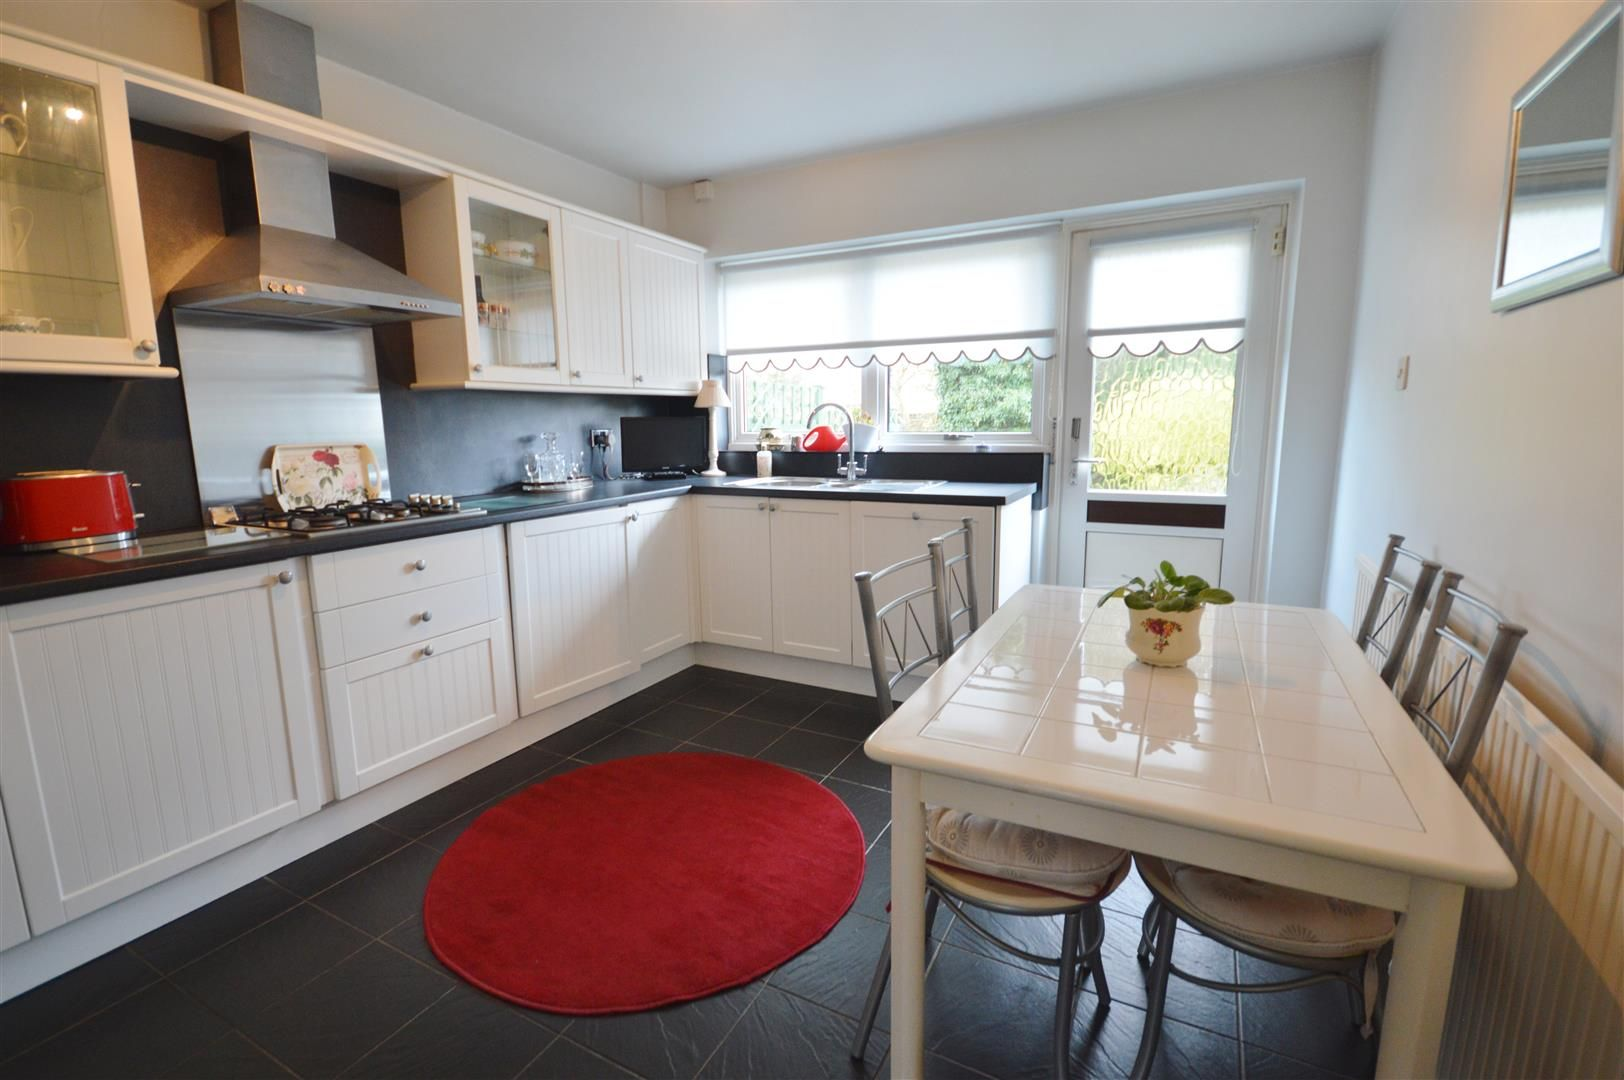 2 bed semi-detached-bungalow for sale in Leominster 4